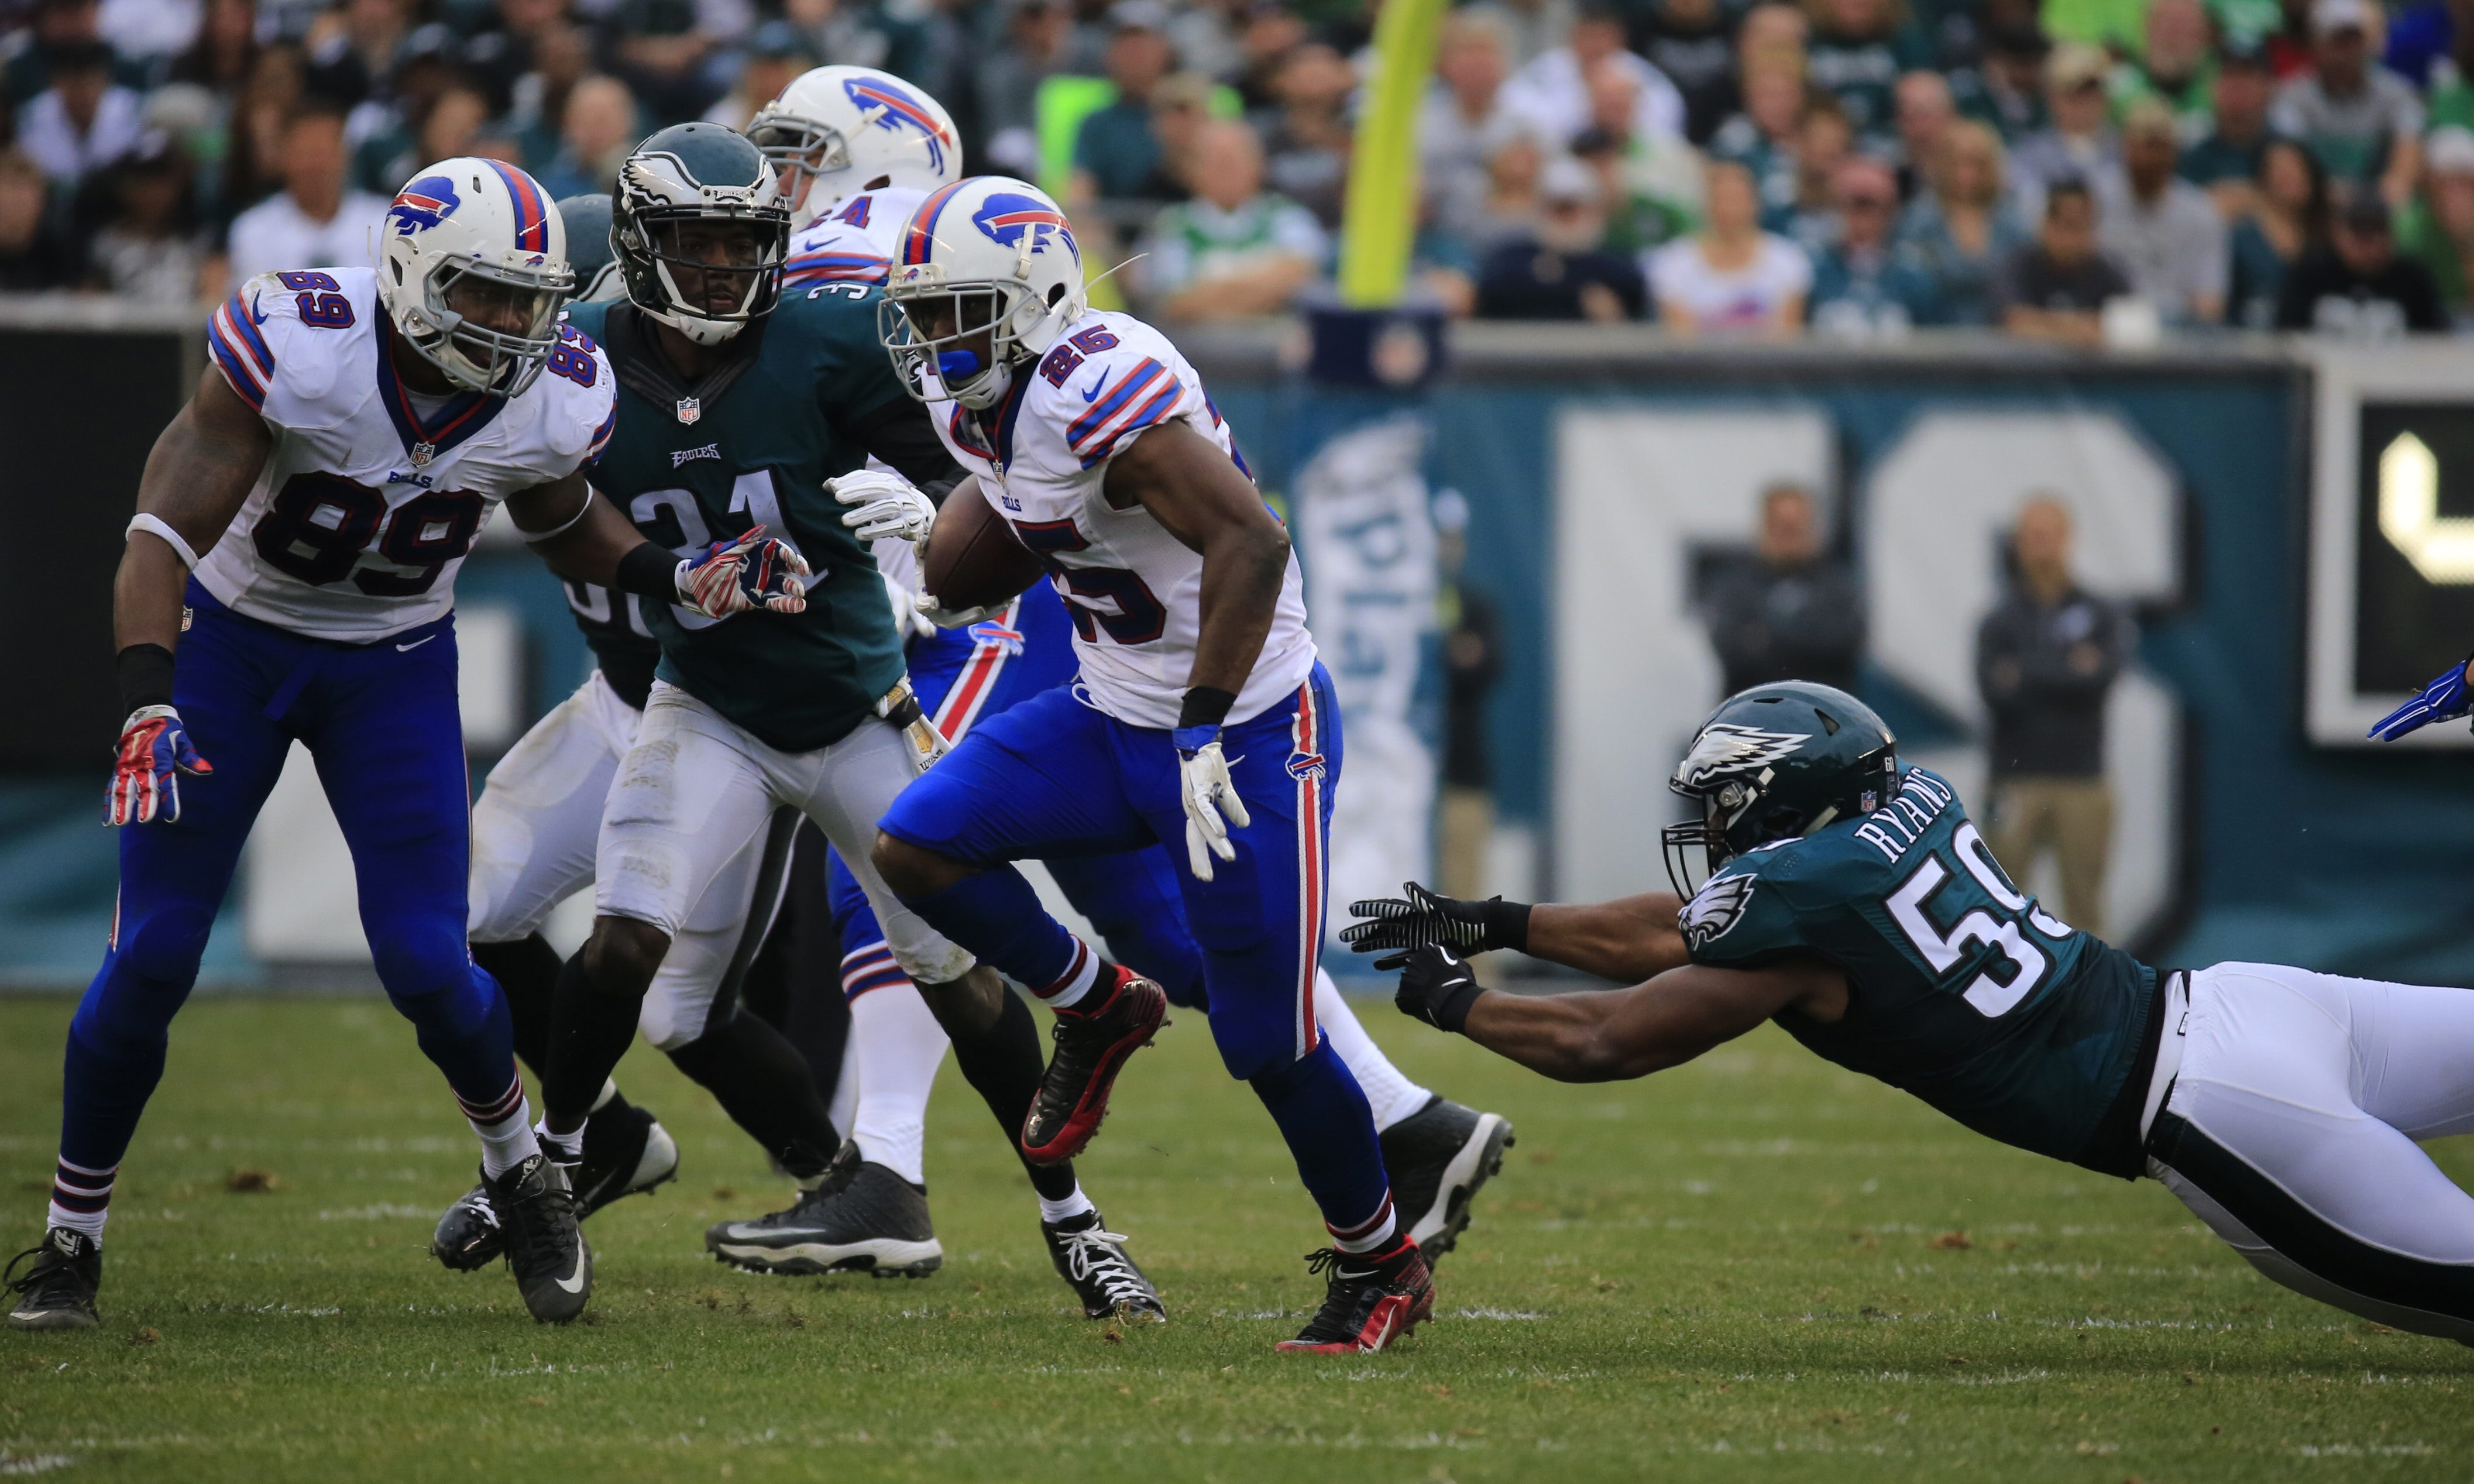 Bills running back LeSean McCoy rushed 20 times against his former teammates but gained just 74 yards. He also caught four passes for 35 yards as the Eagles kept him in check.